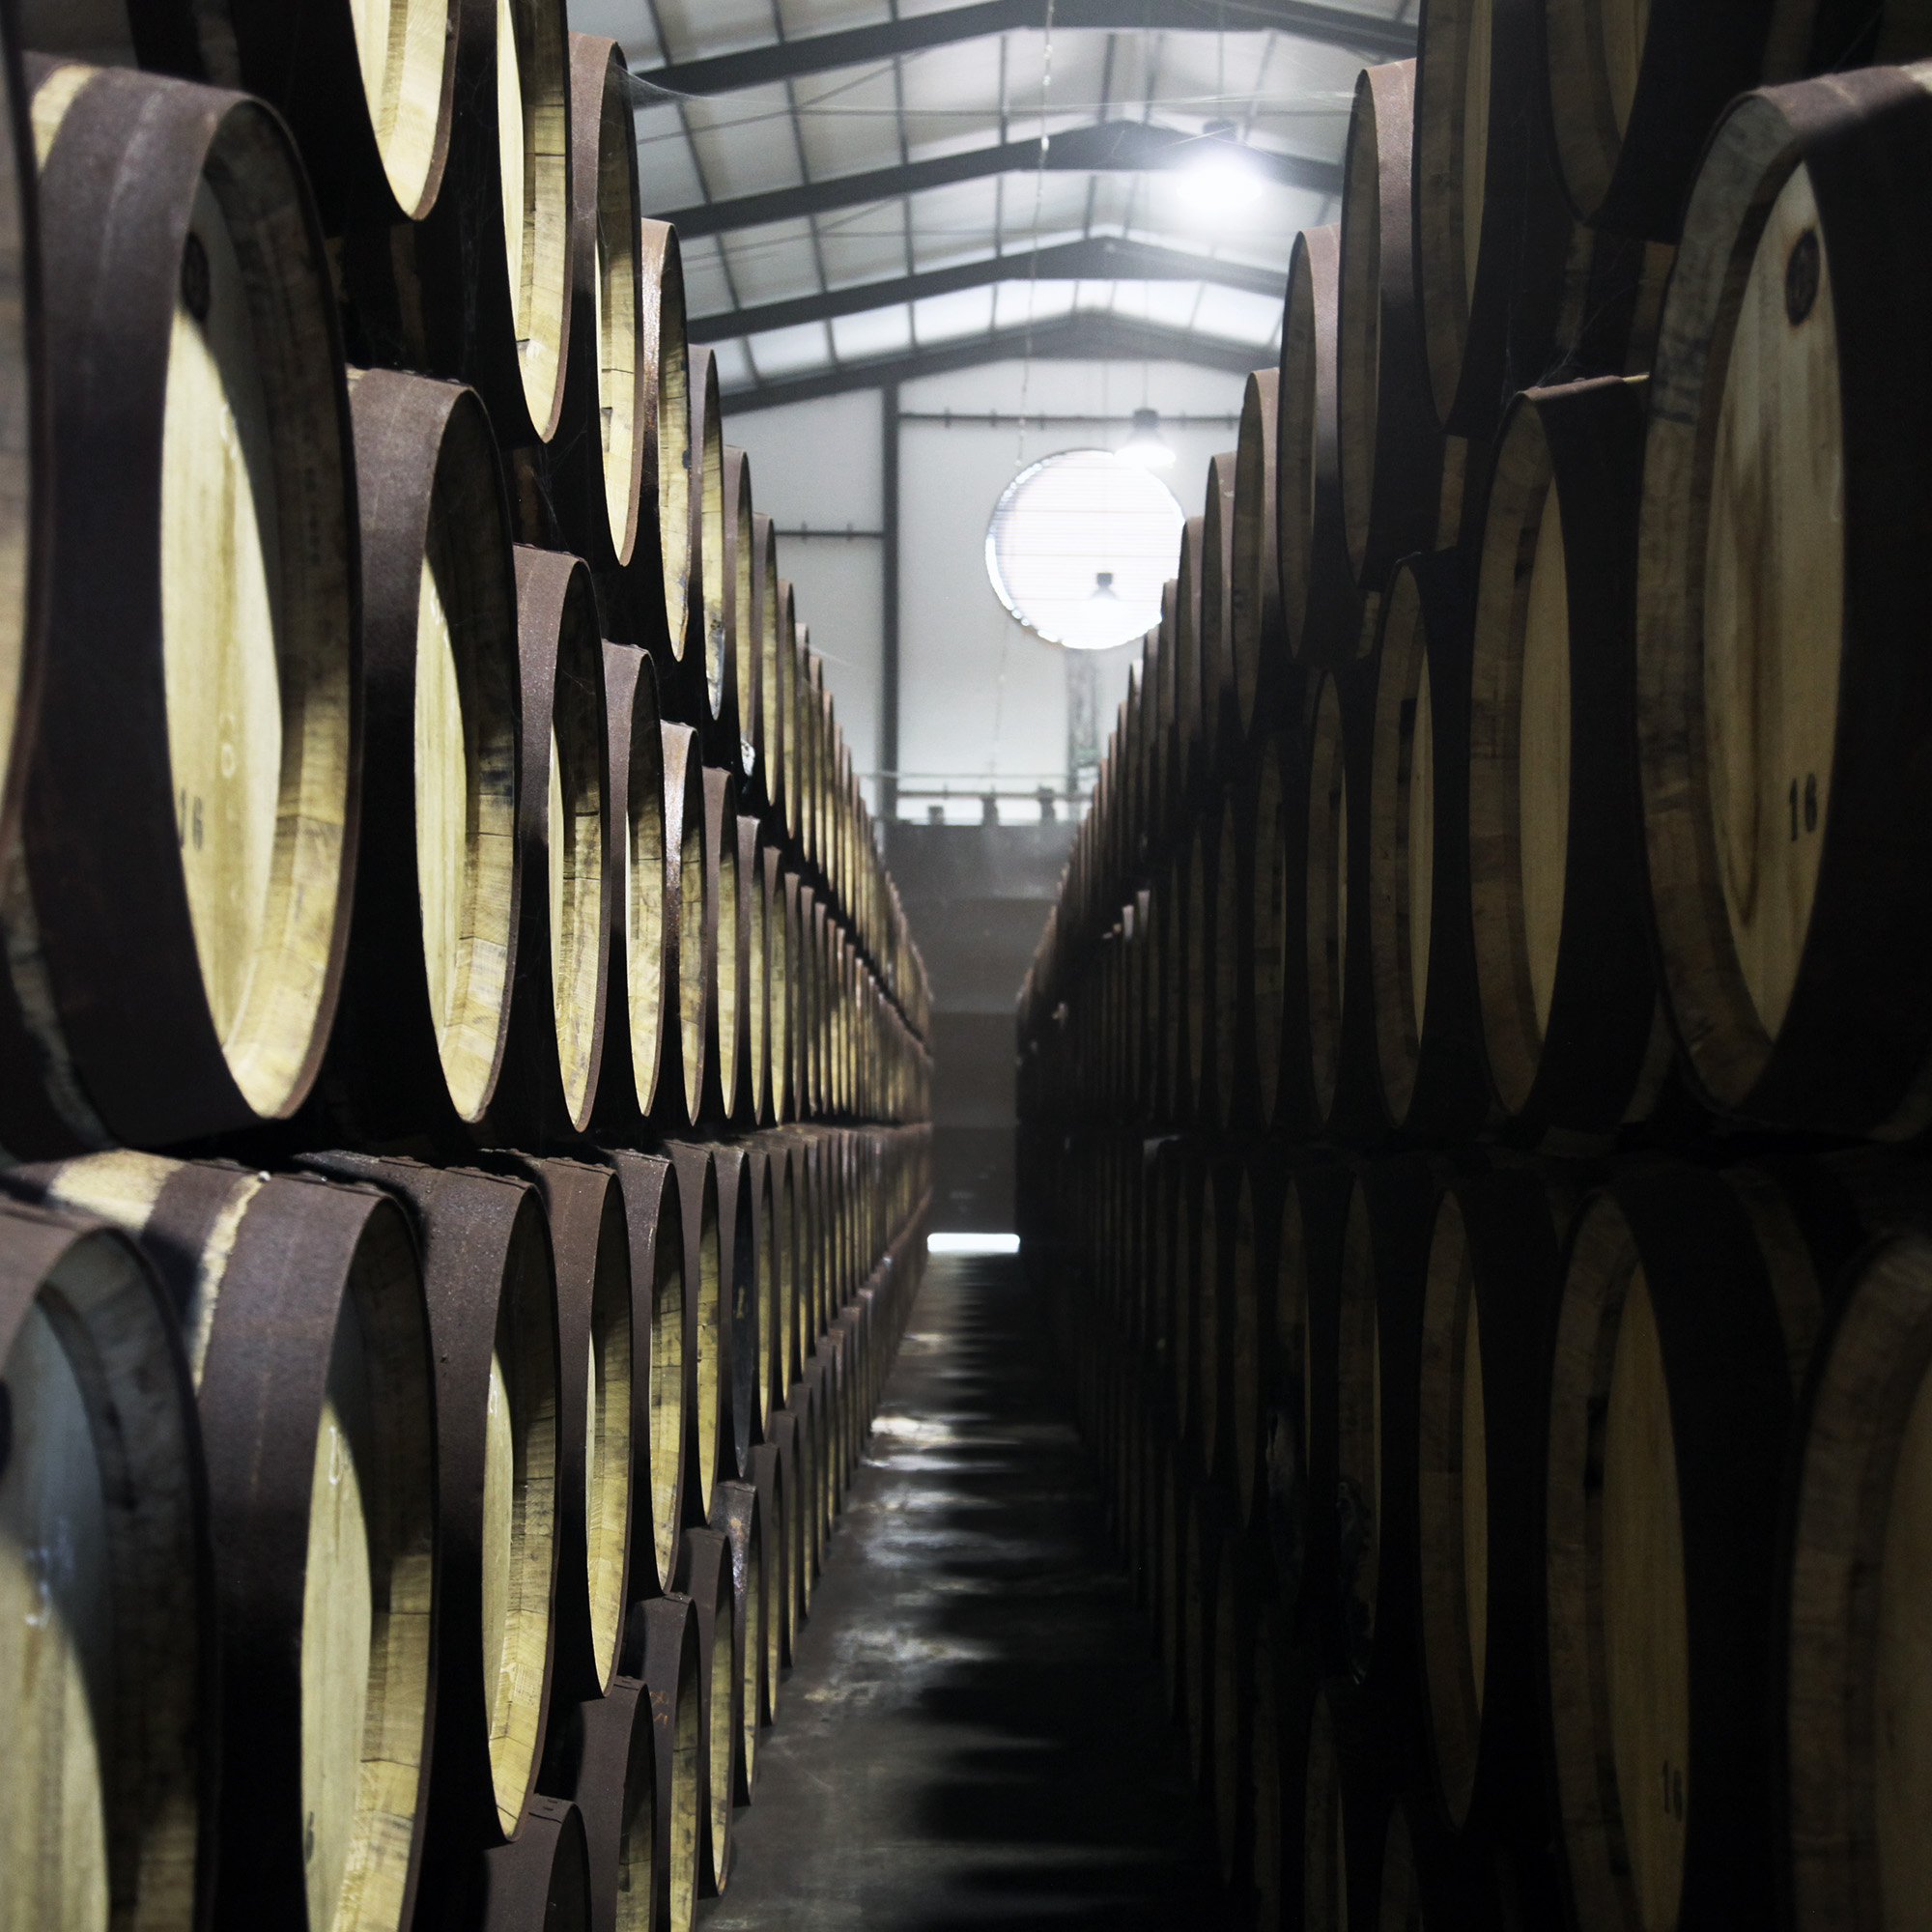 Our whisky casks